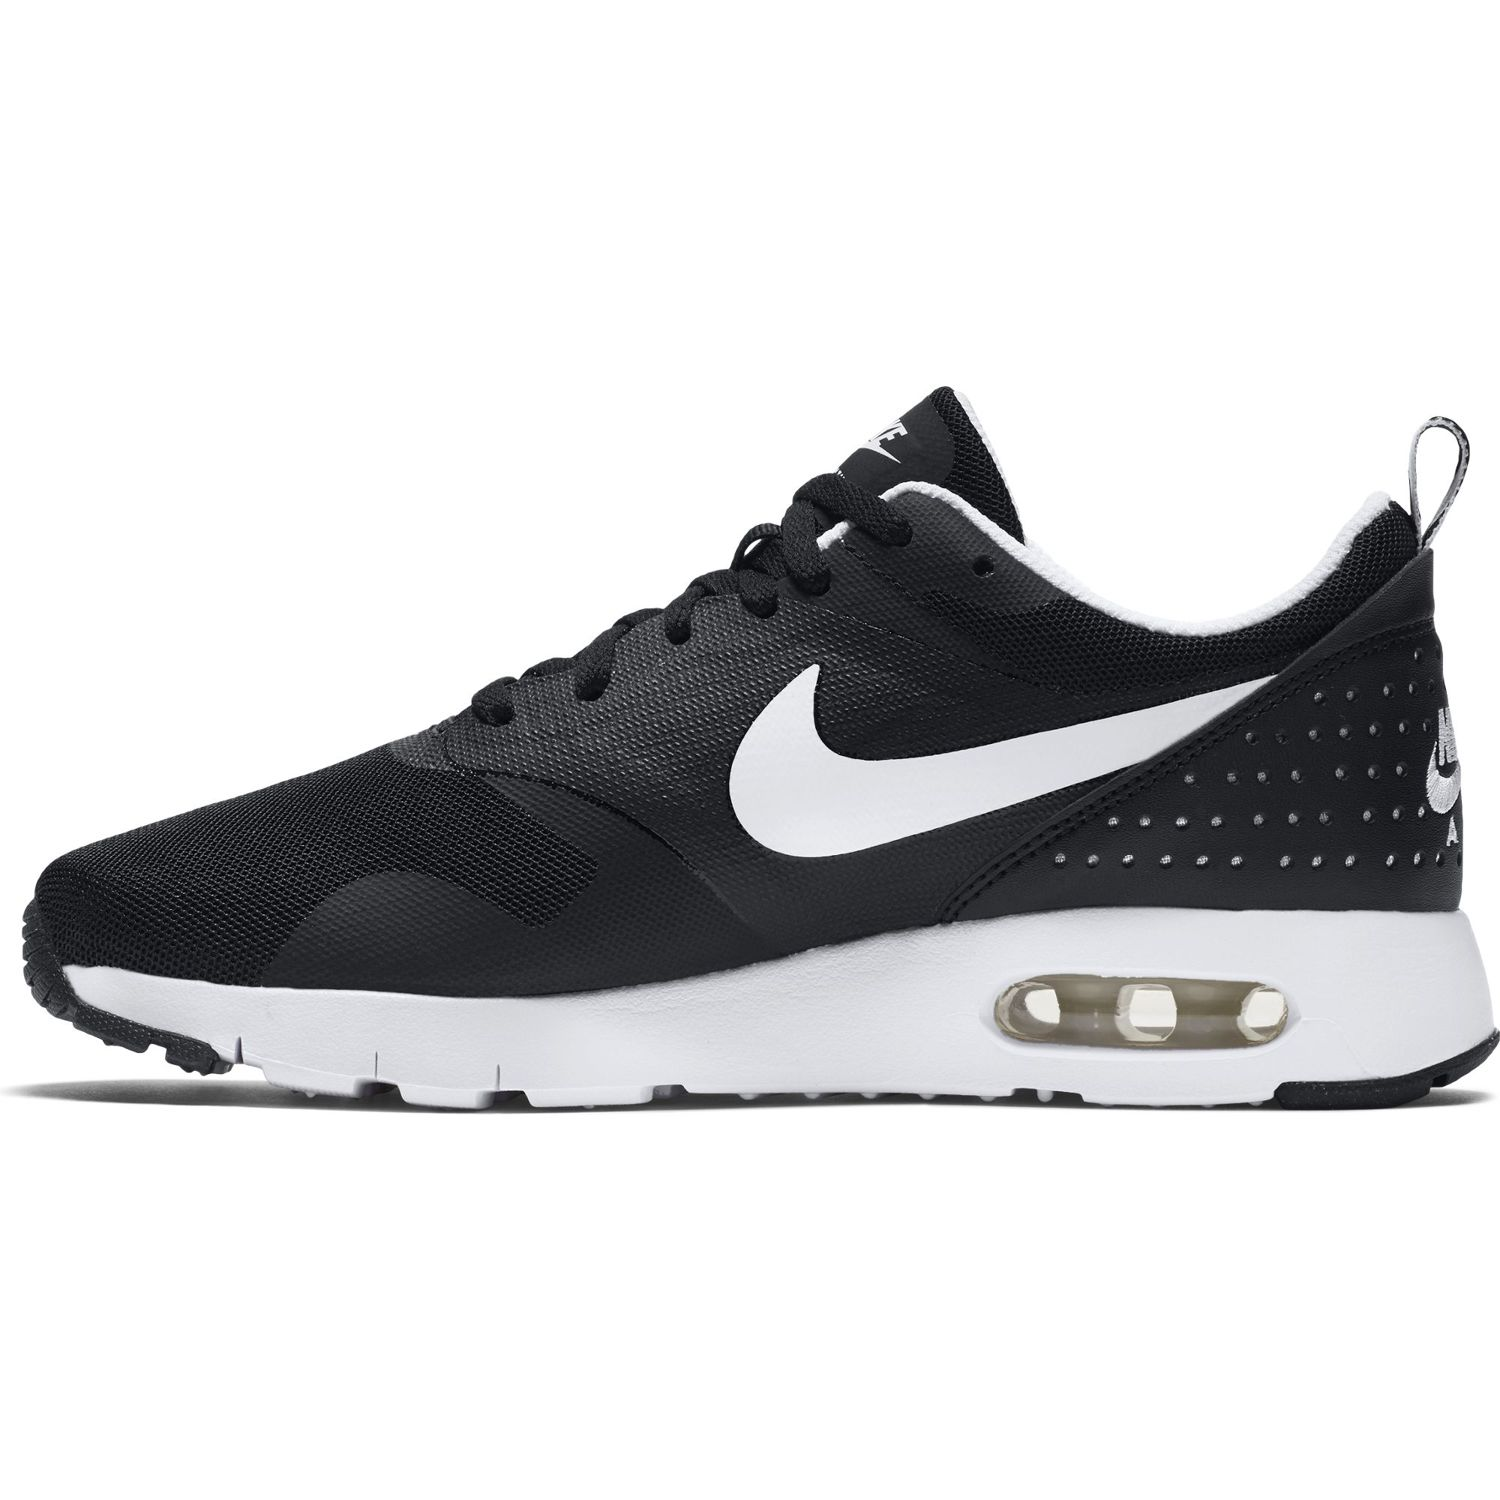 Nike Air Max Tavas (GS) Black/White 814443 001